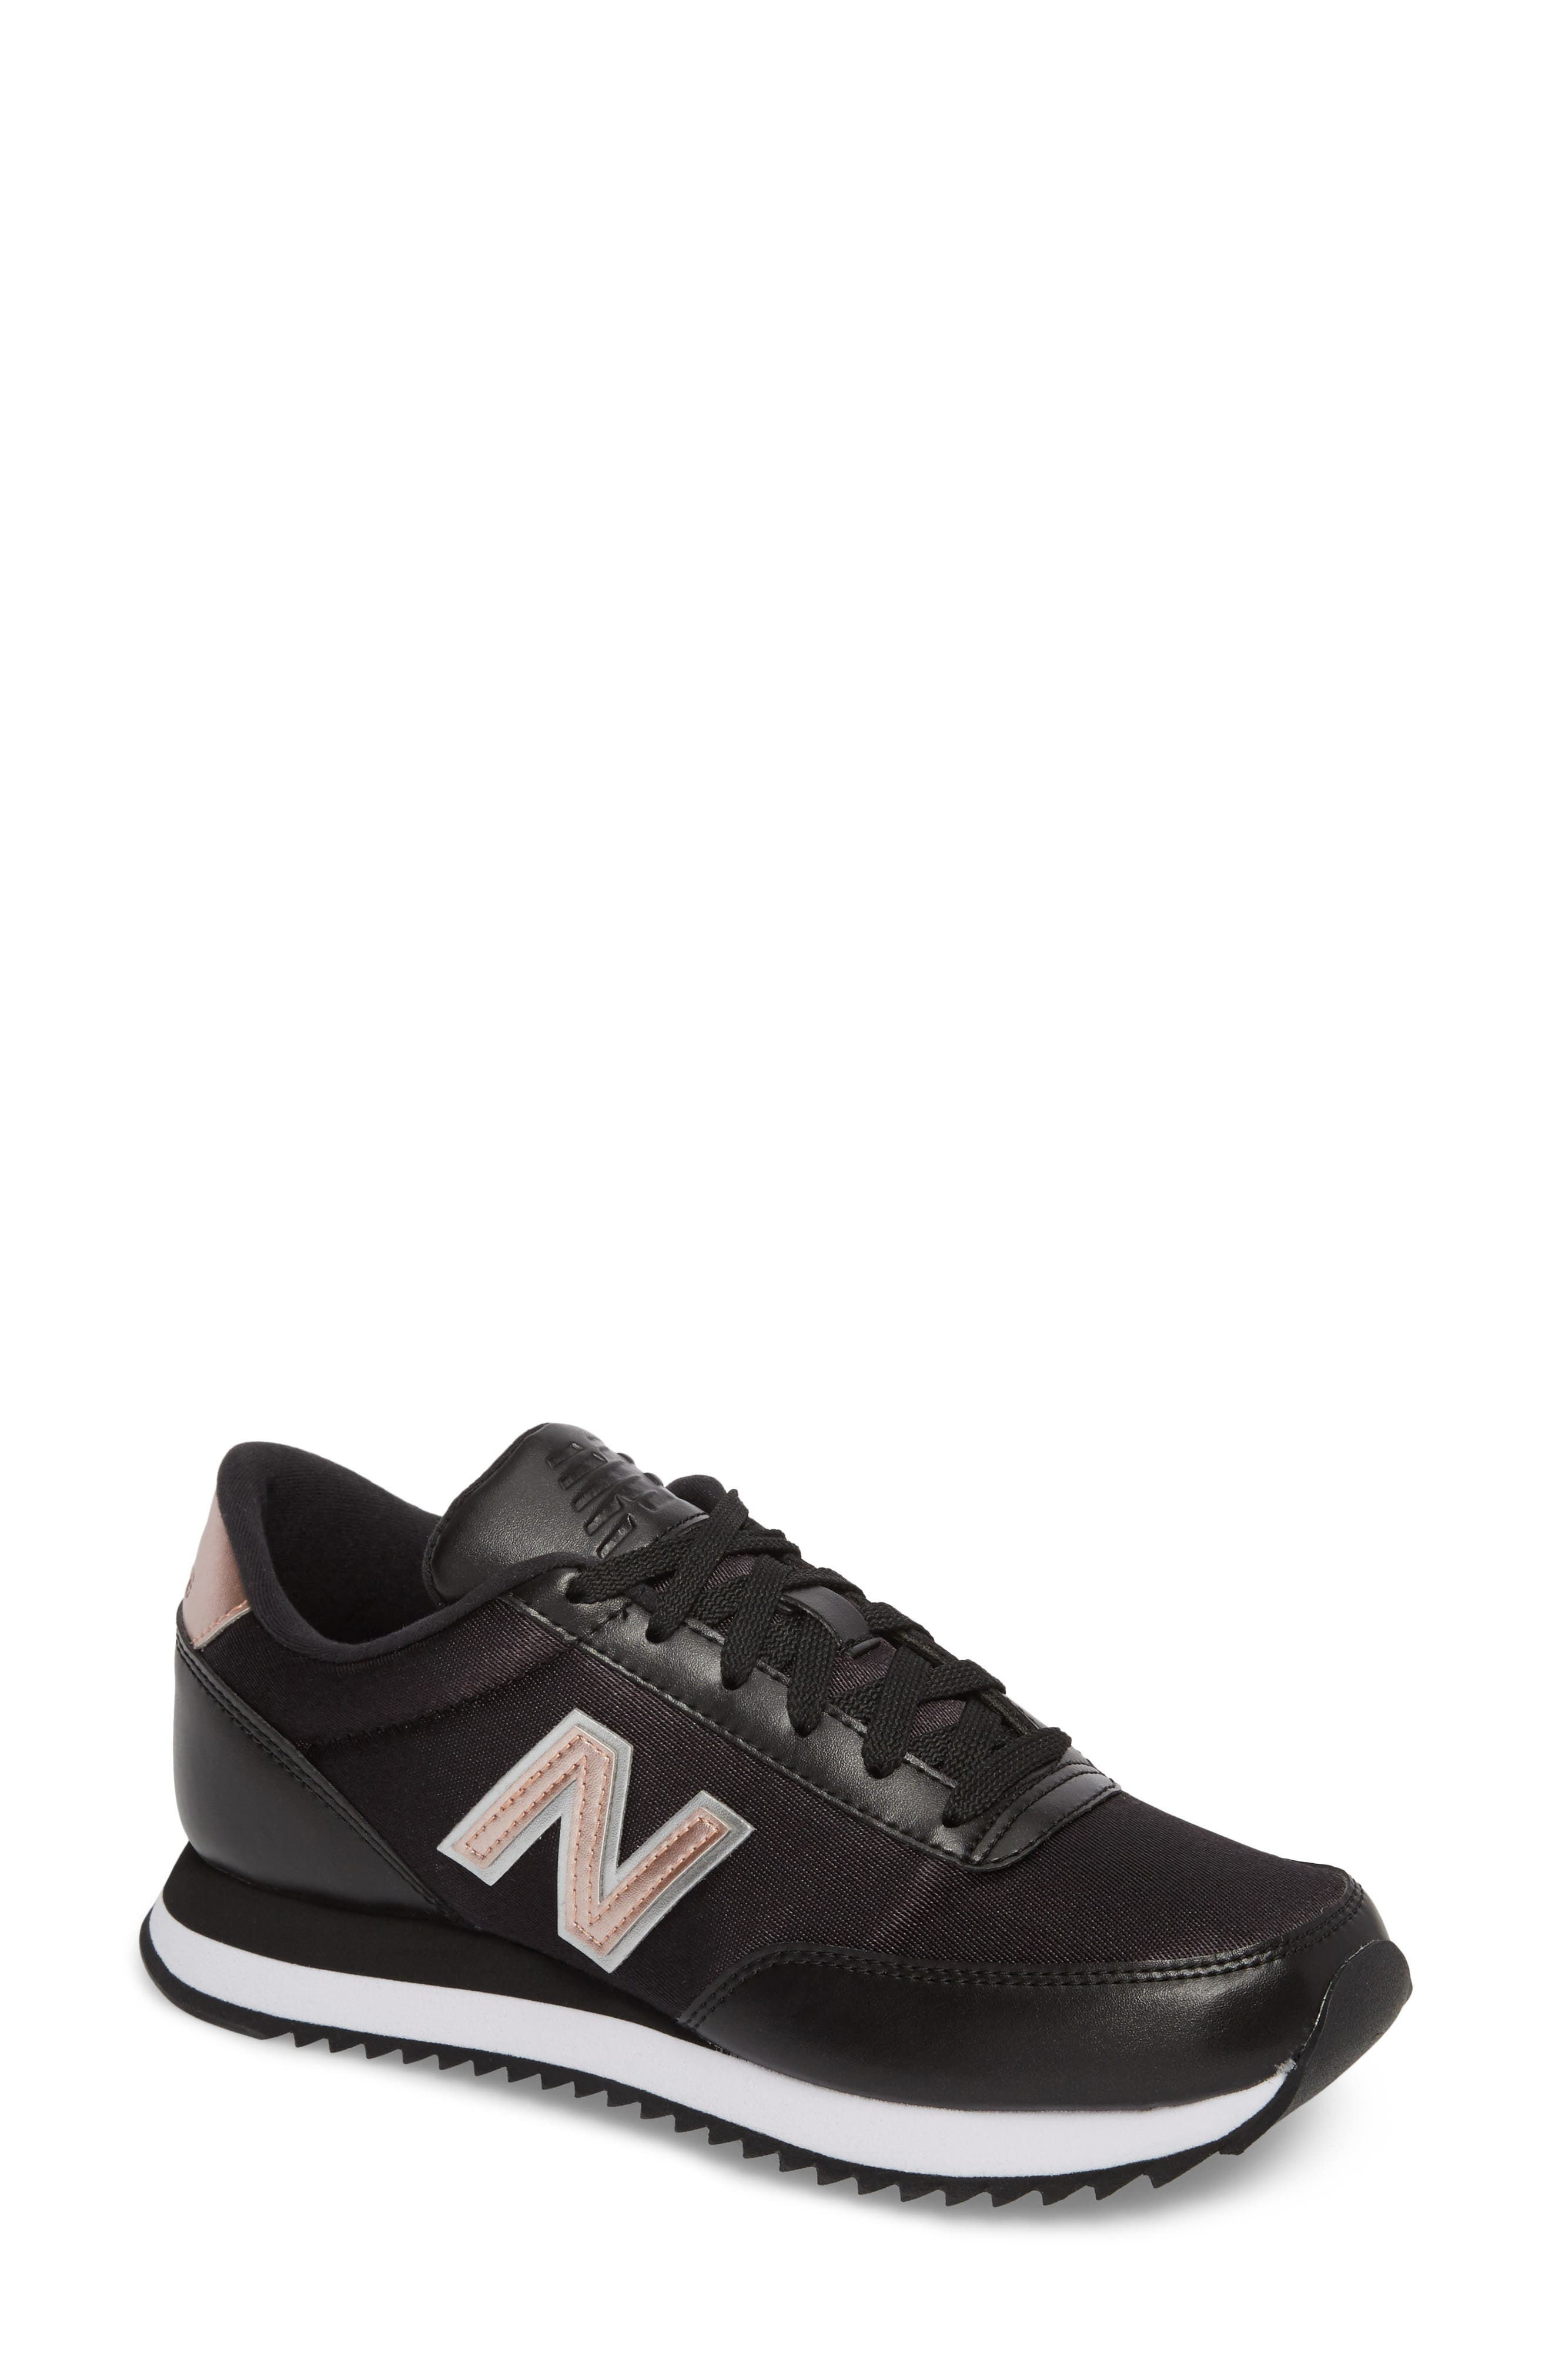 new balance rugby 501